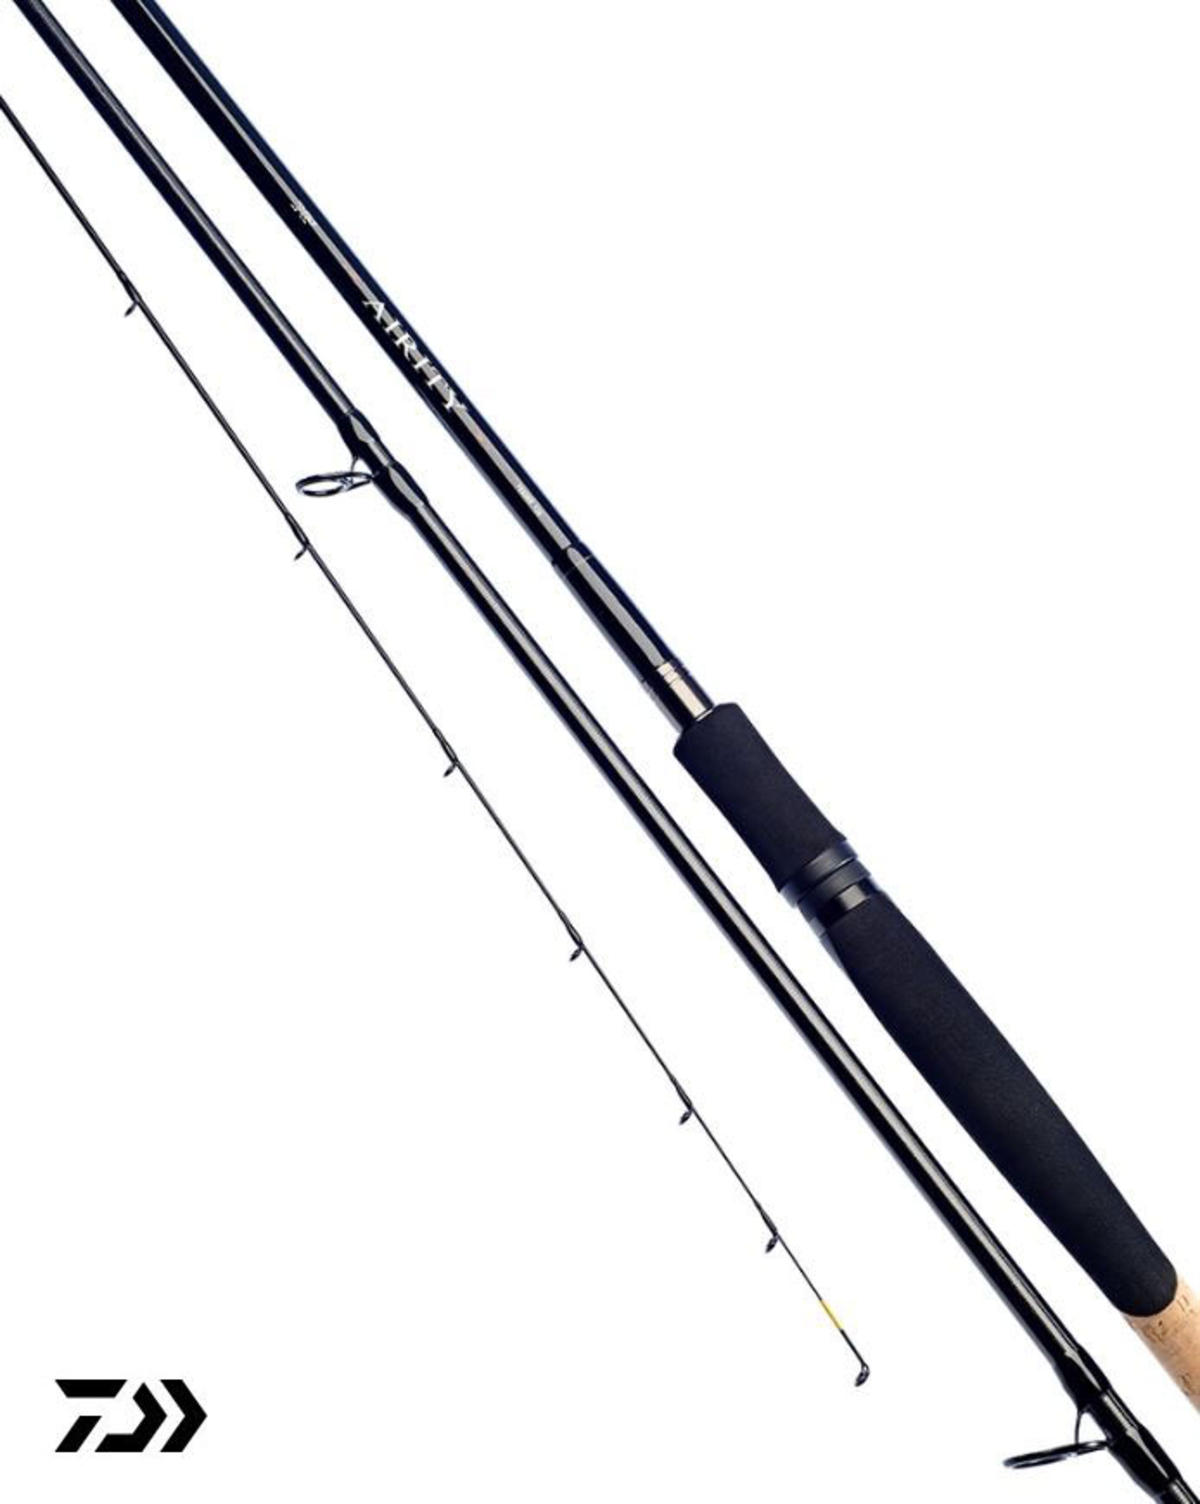 New Daiwa Airity X45 Feeder Fishing Rods - All Models